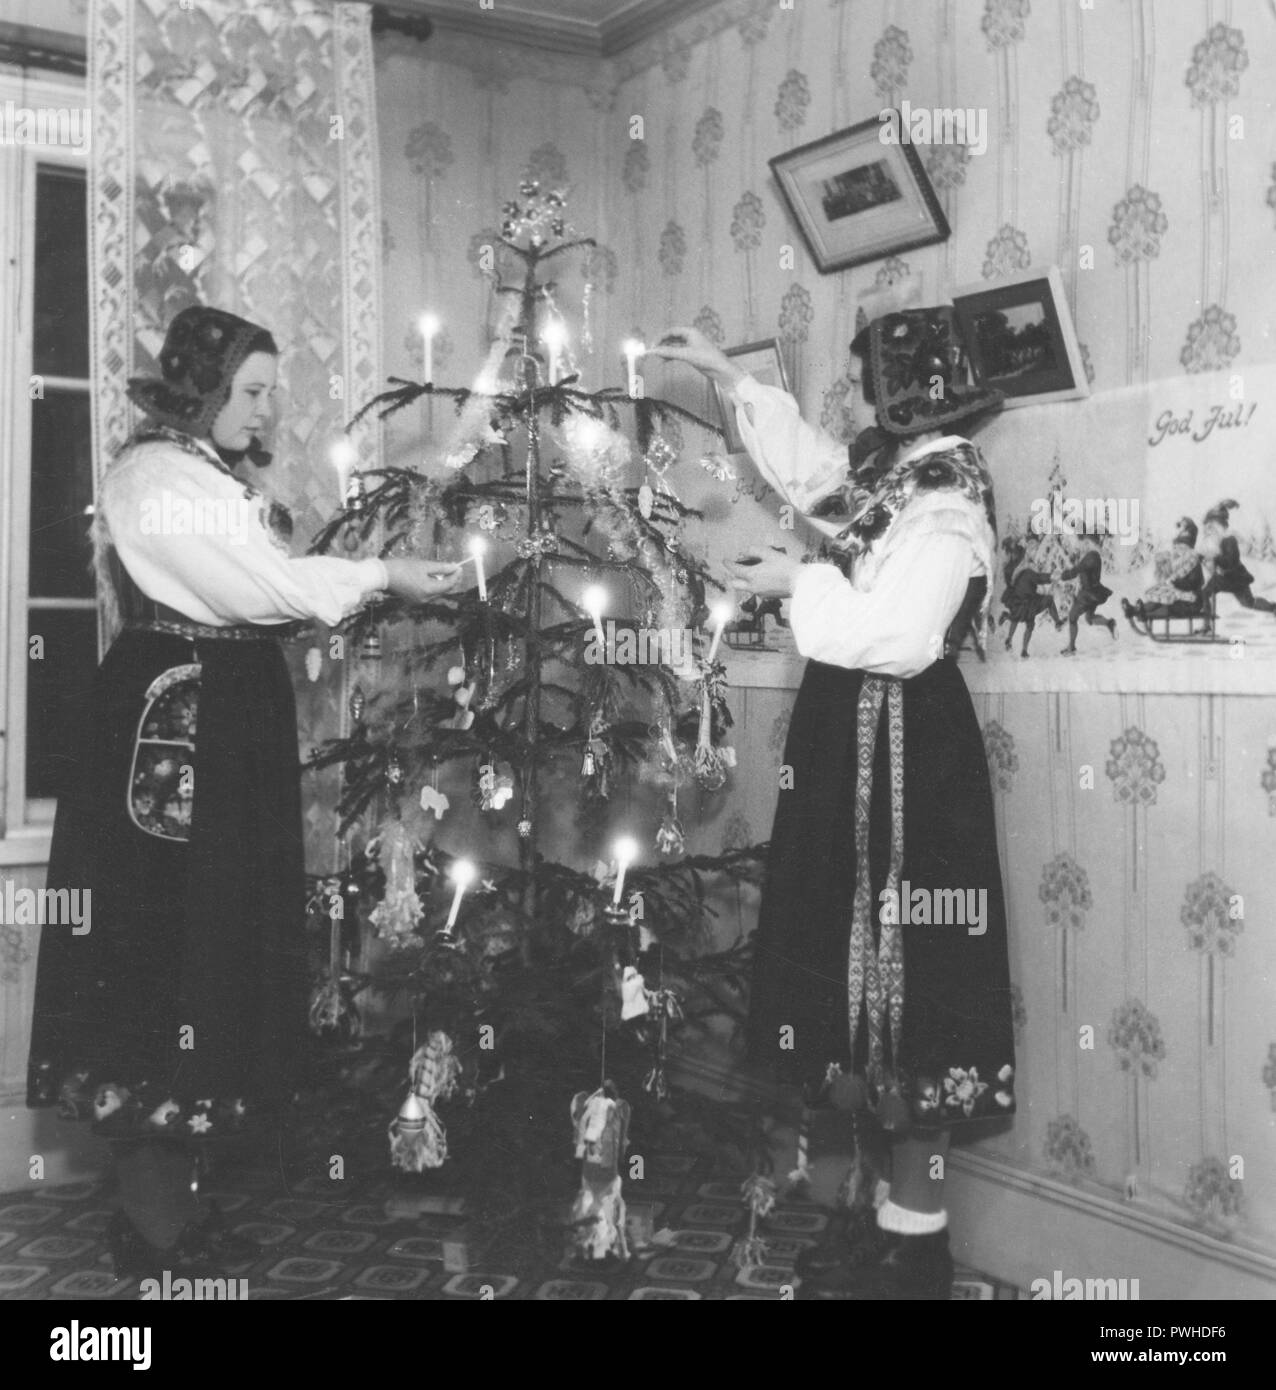 Christmas in the 1940s. Two young women in traditional swedish costumes are lighting the candles in the christmas tree. Dalarna Sweden 1940s - Stock Image